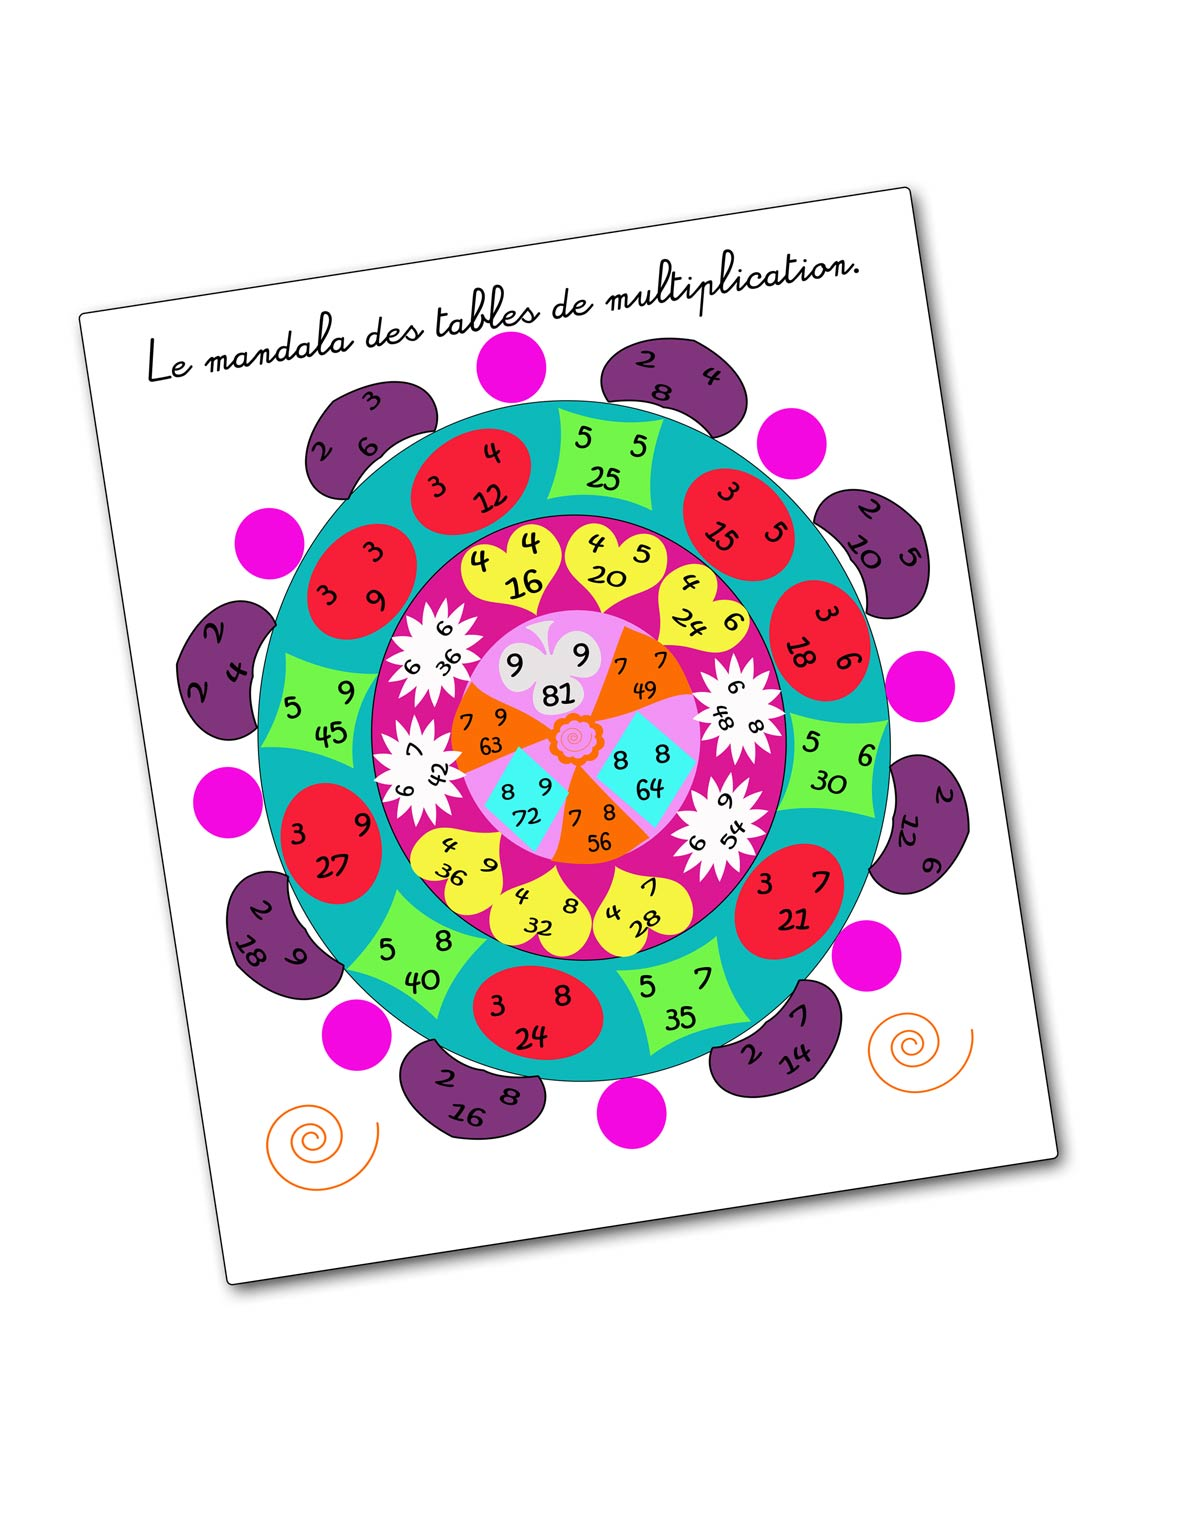 Mandala des tables de multiplication un monde meilleur for La table de multiplication de 8